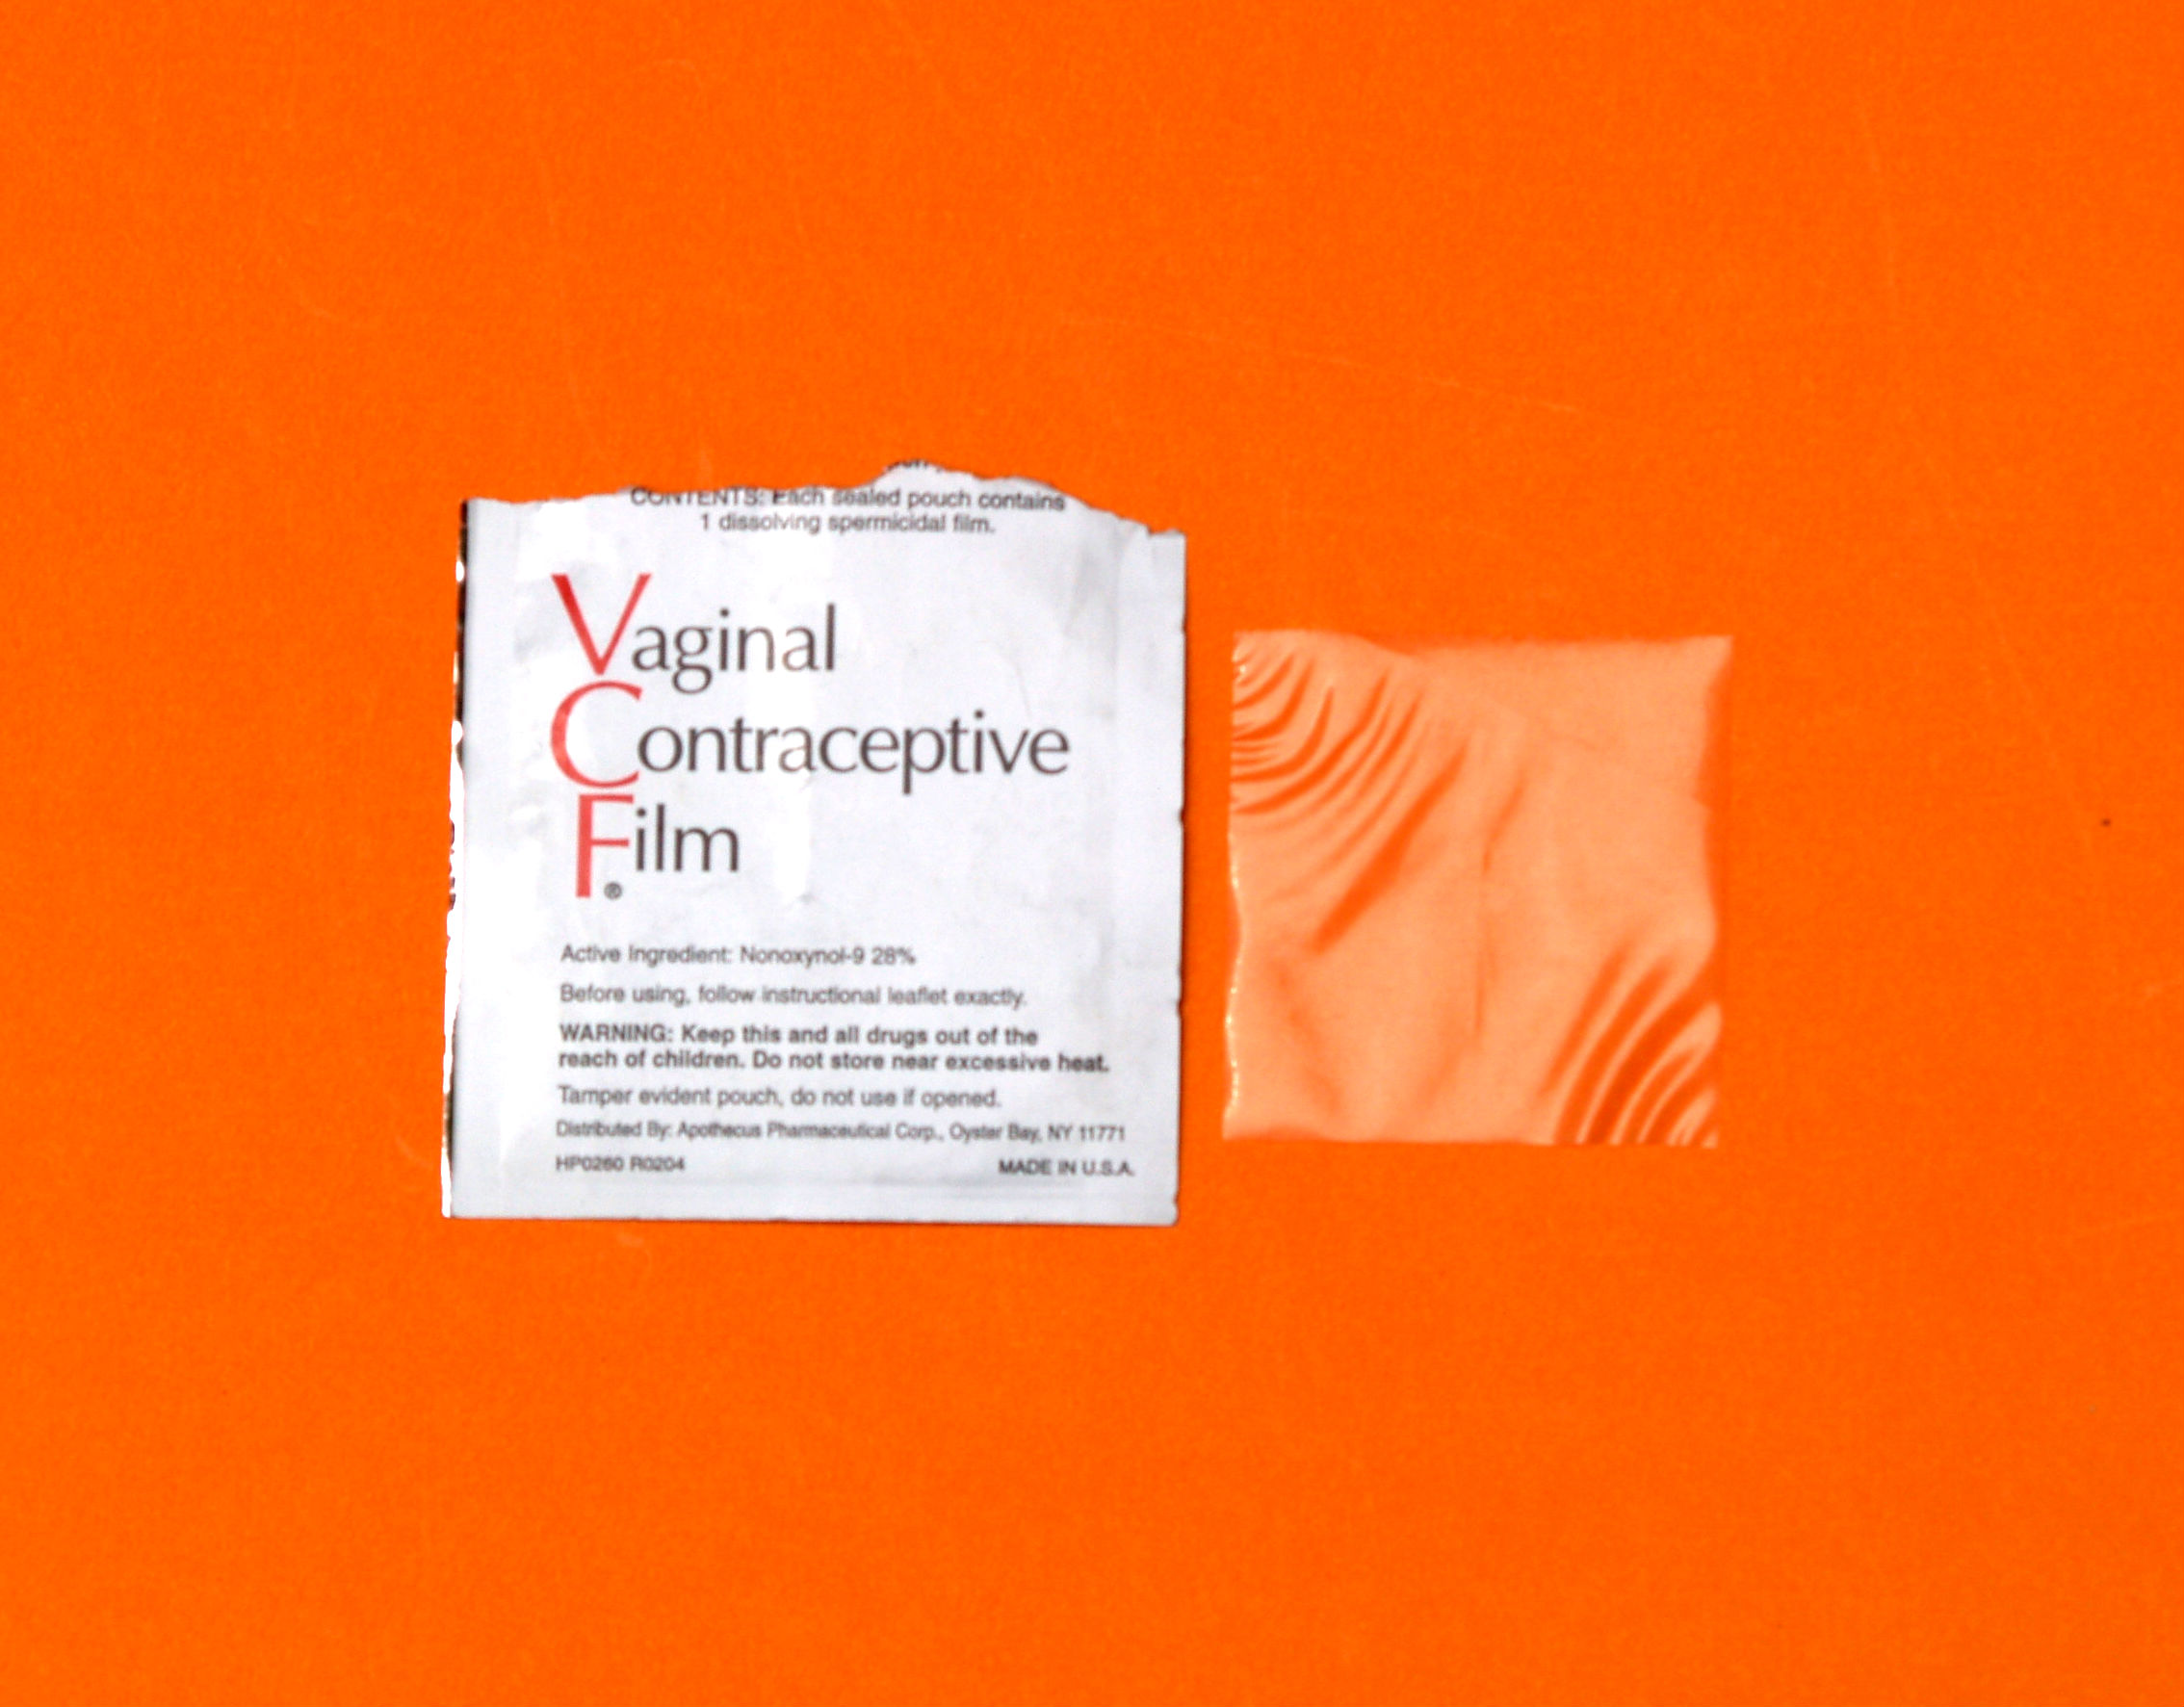 Basic information about vaginal contraceptive film (VCF).